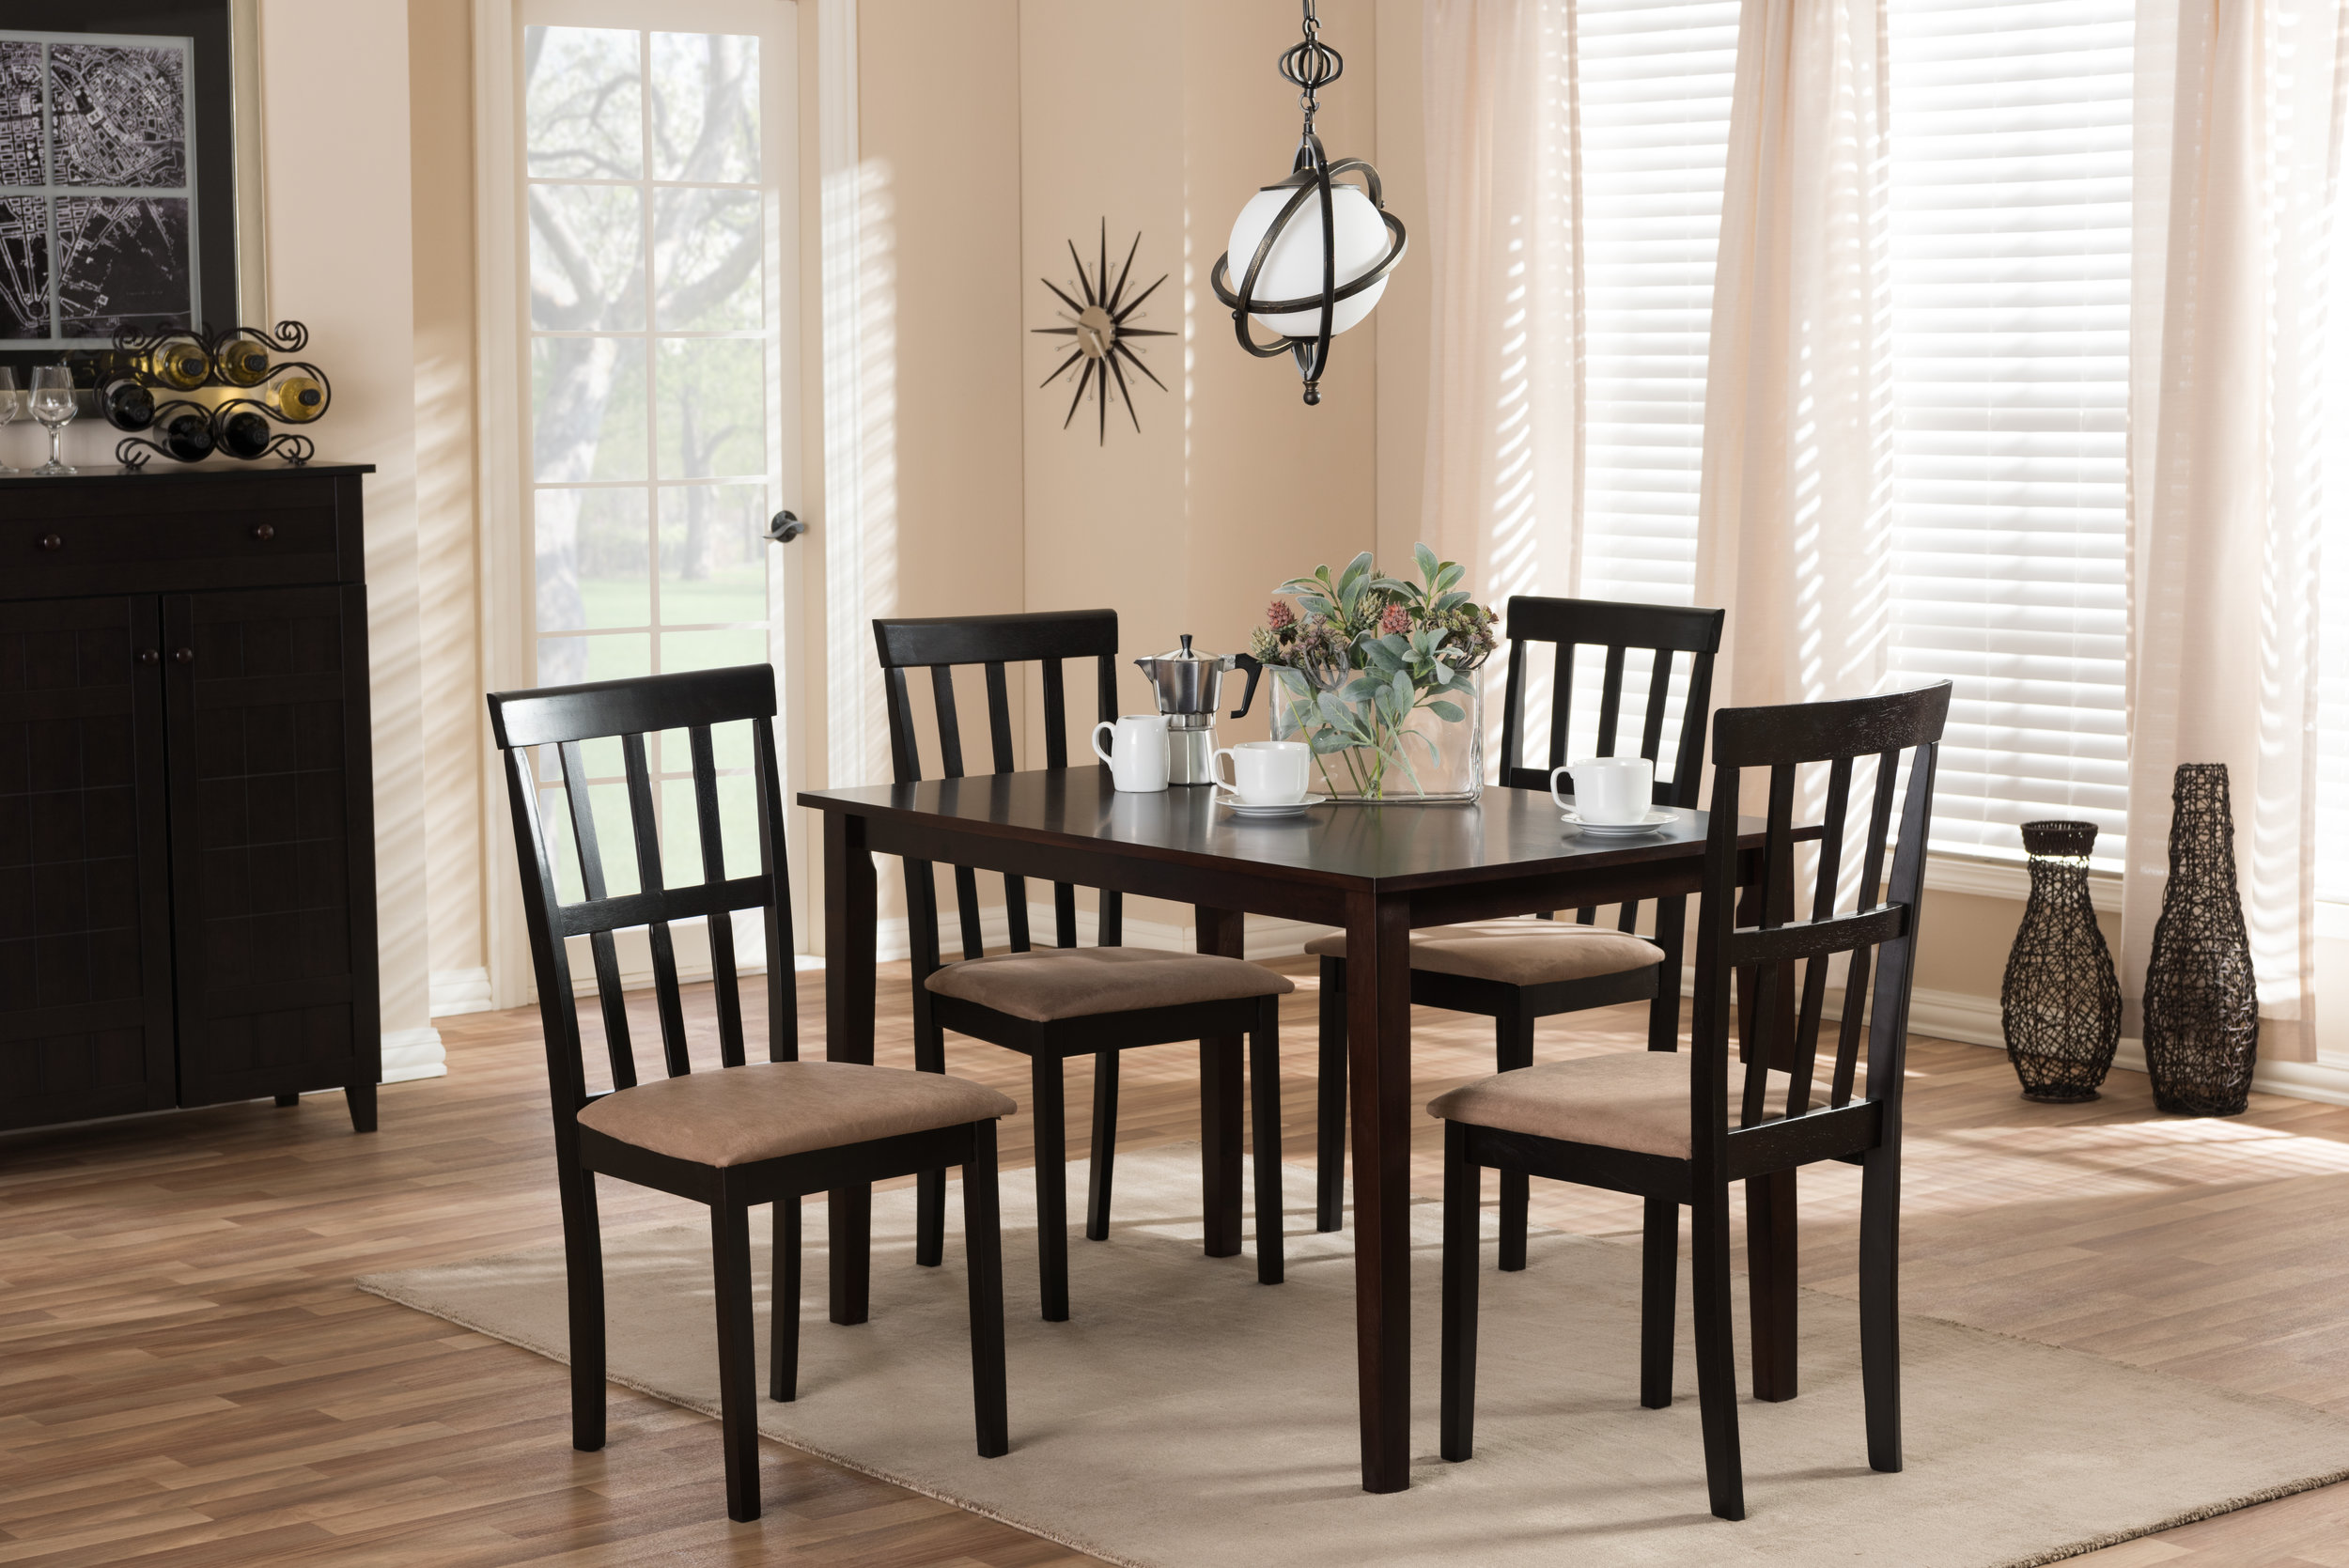 Jet Moon 5PC Dining Set-8412-Edit.jpg